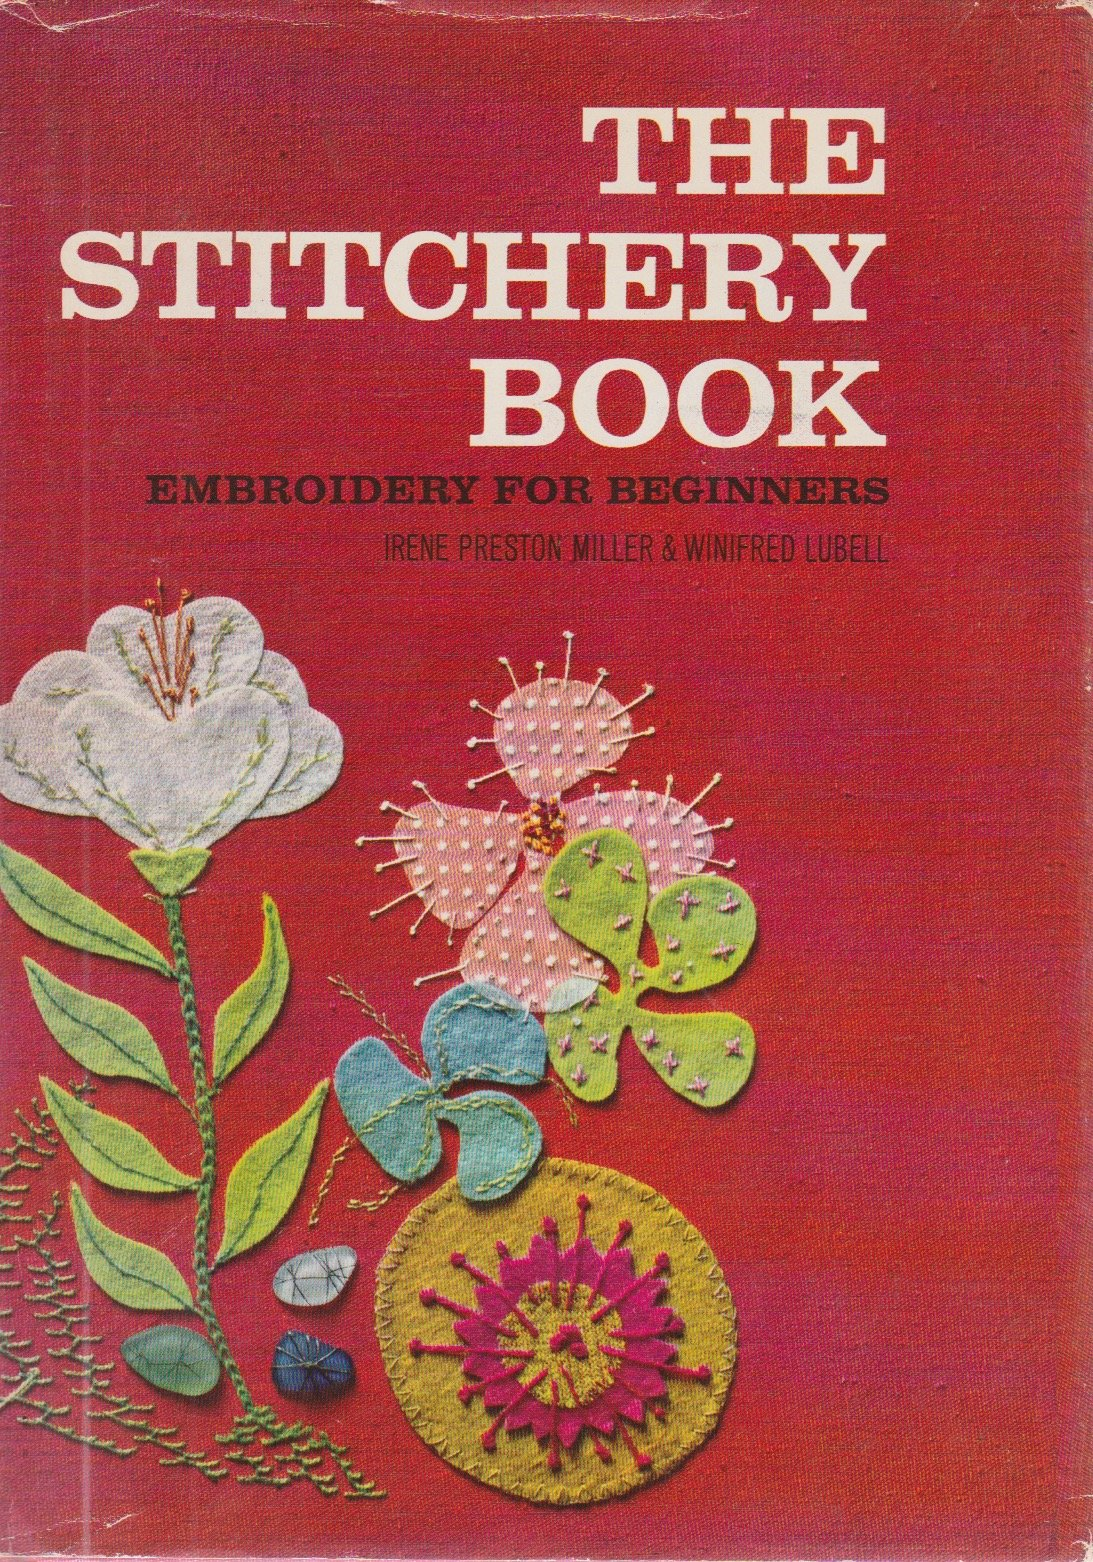 The Stitchery Book: Embroidery for Beginners: Amazon.co.uk: Irene Preston &  Lubell, Winifred Miller: 9780385007597: Books